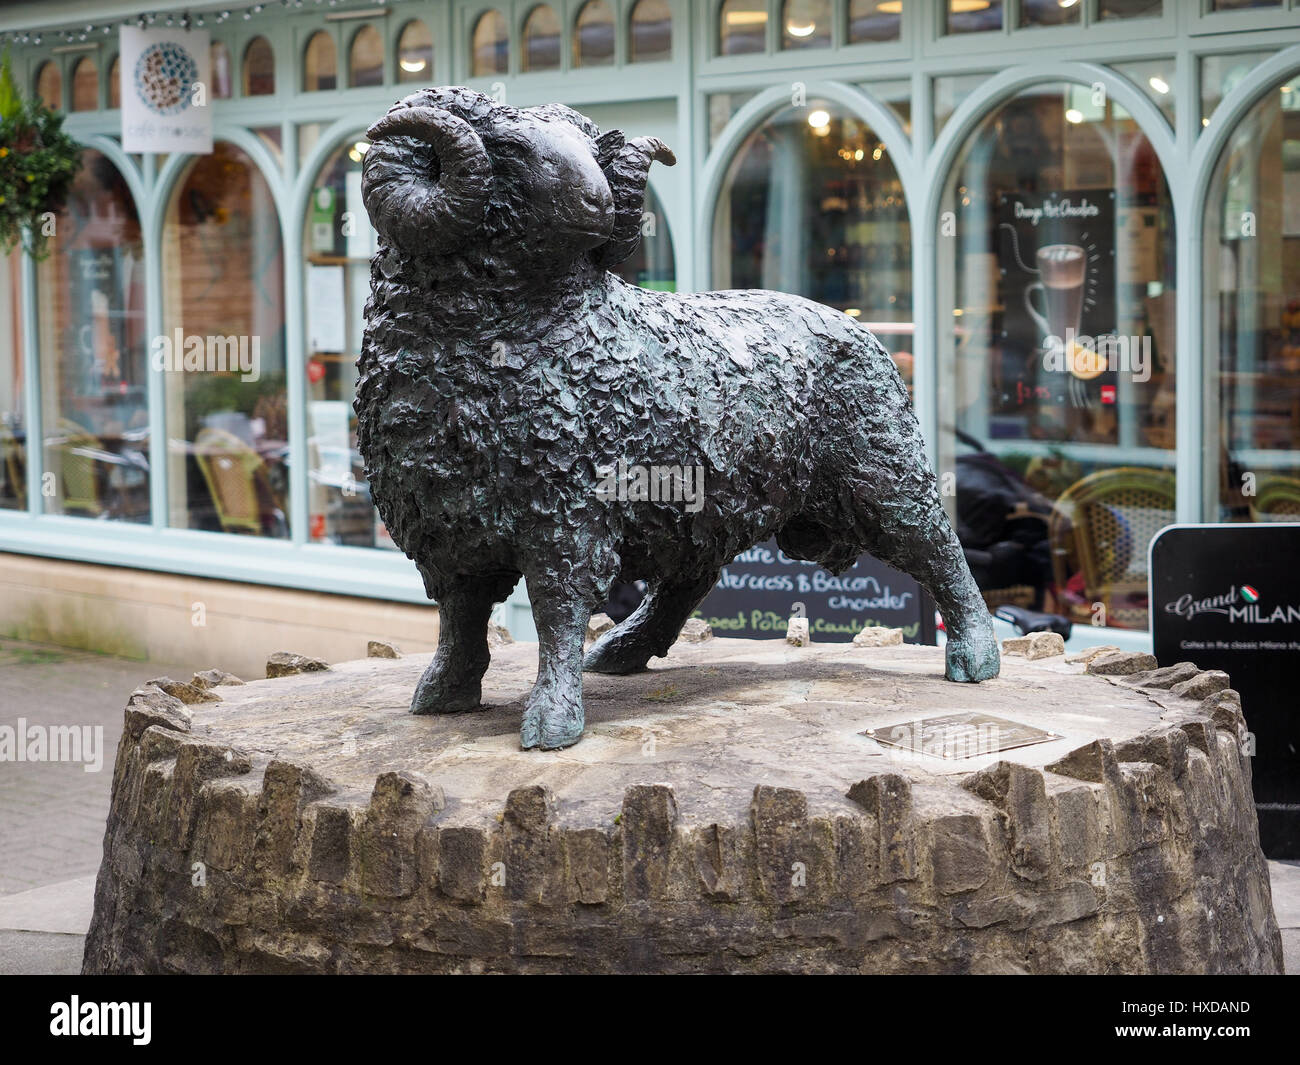 a view of Jill Tweed's black ram statue sculpture in the Woolmarket Wool Market in the center centre of Cirencester - Stock Image